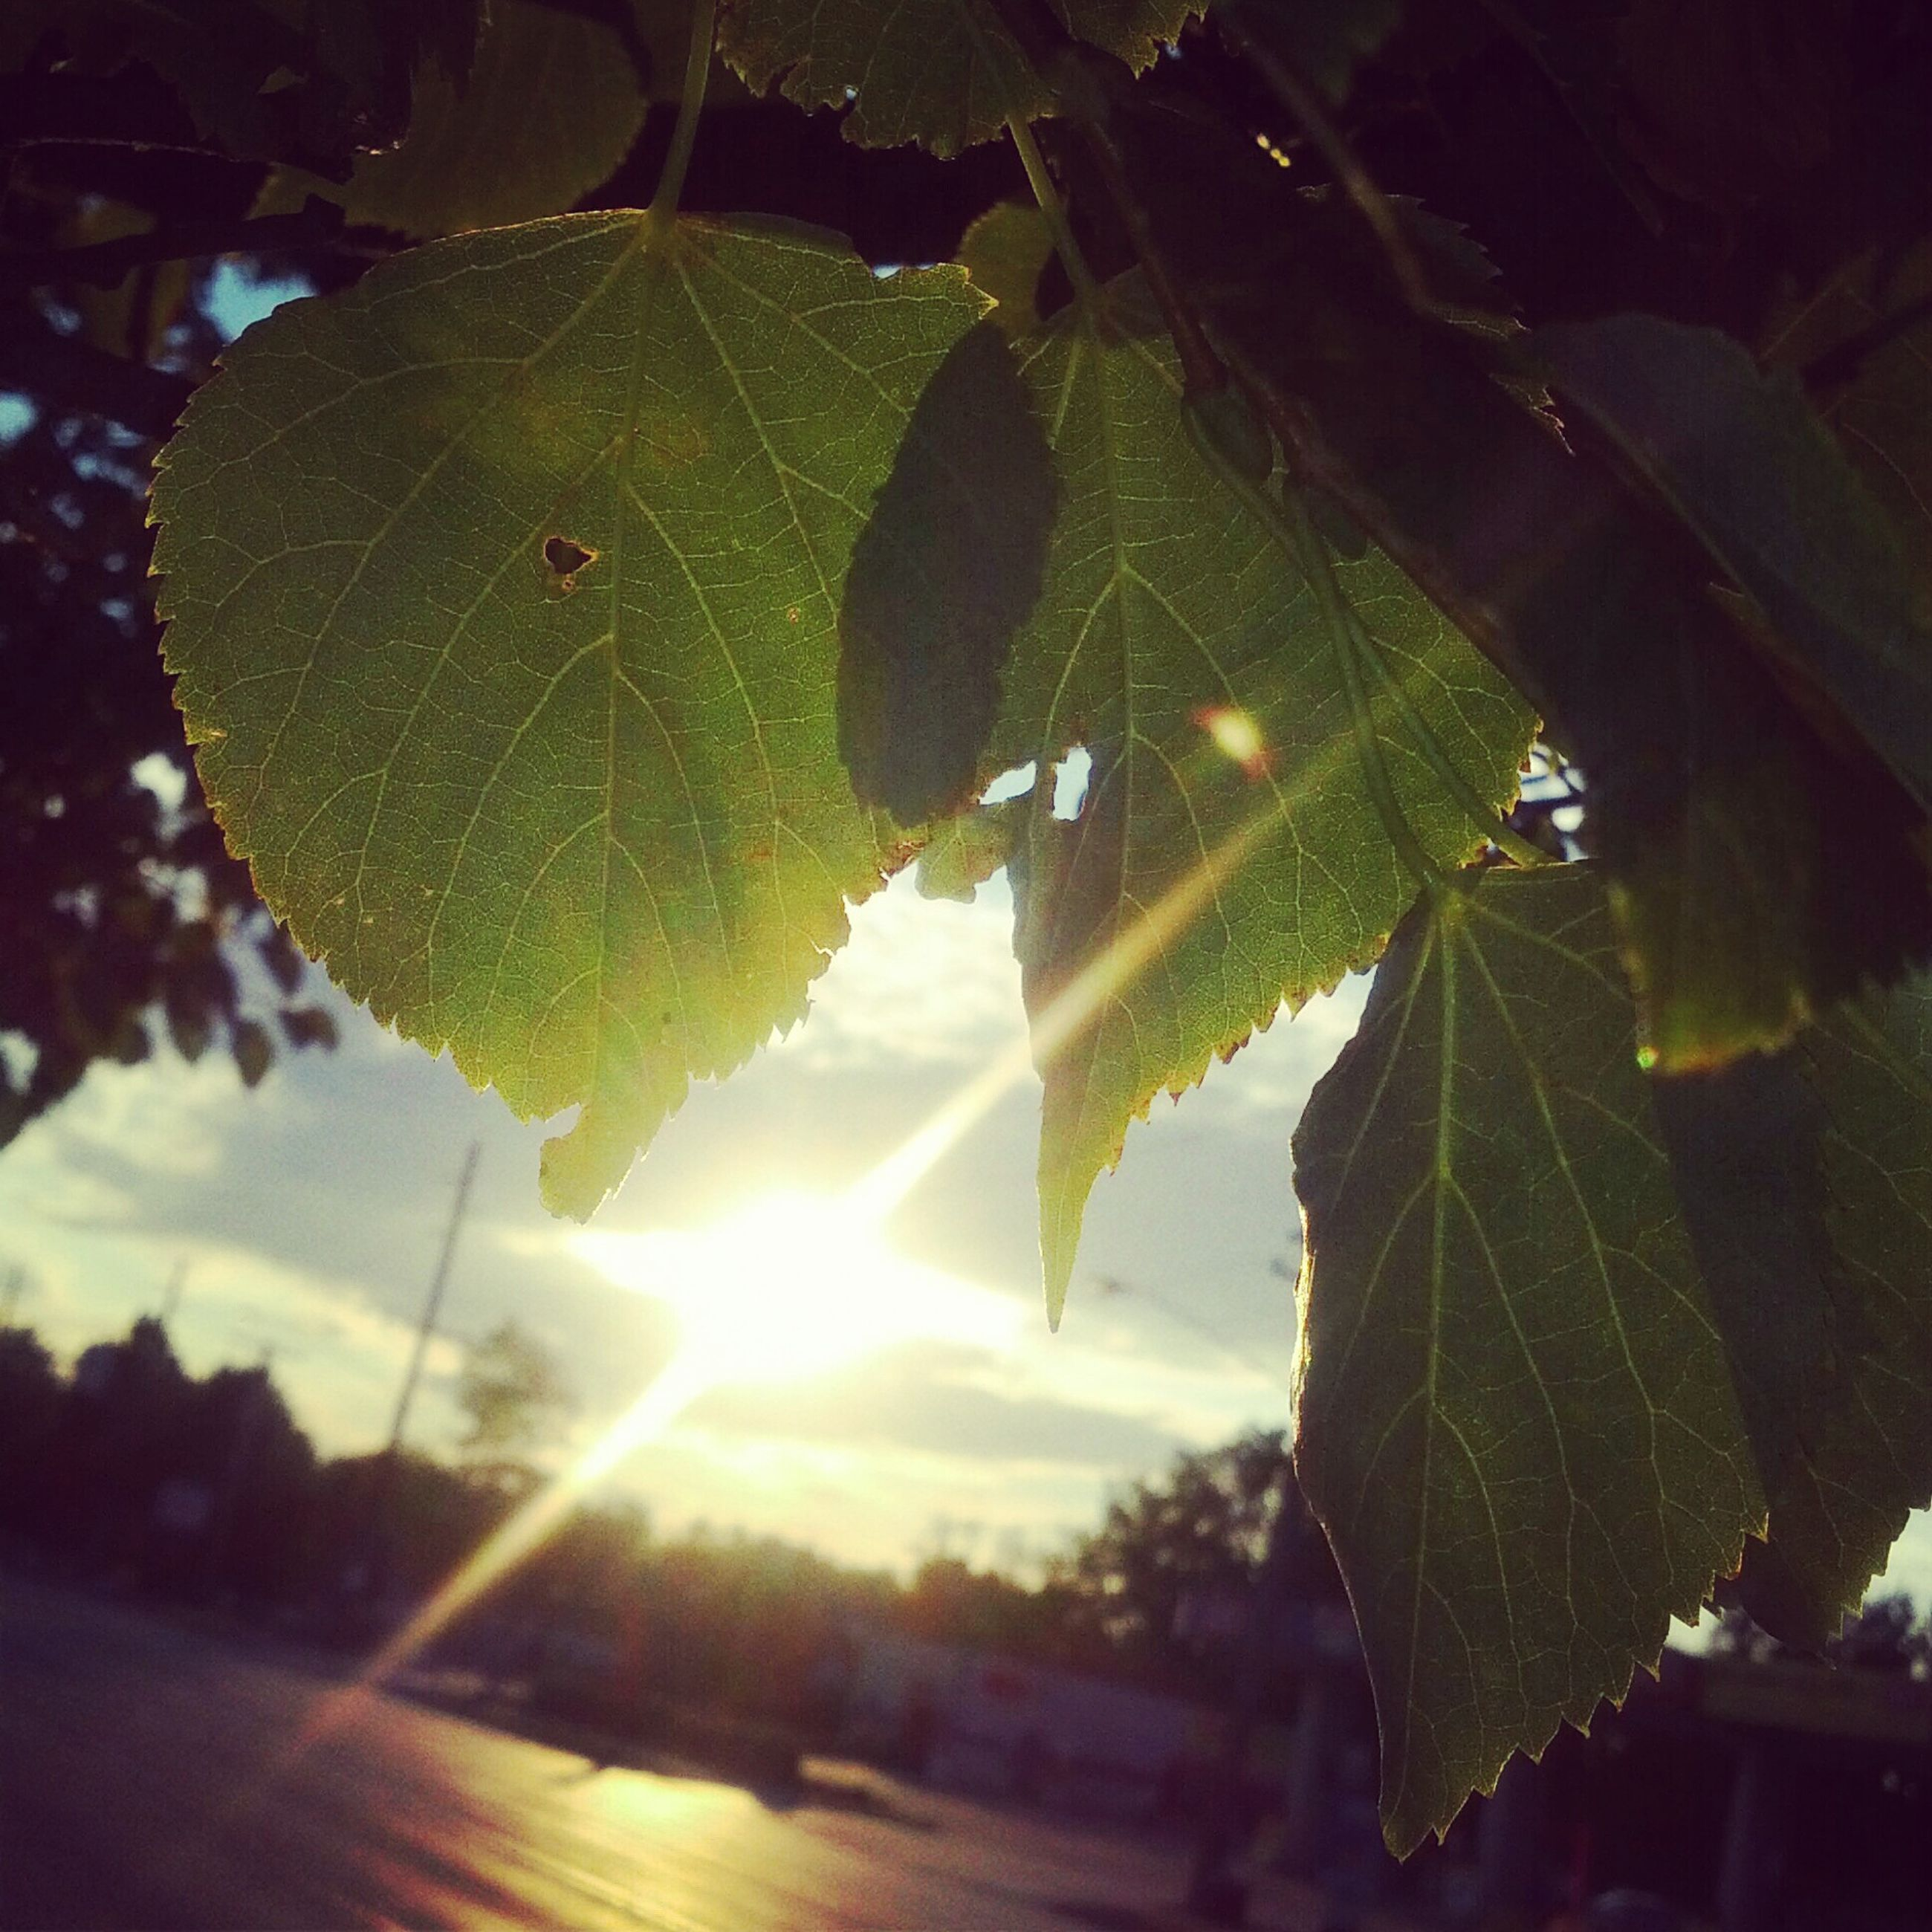 leaf, sun, sunbeam, sunlight, lens flare, nature, growth, green color, tree, close-up, leaf vein, beauty in nature, tranquility, no people, day, outdoors, plant, sunny, sky, focus on foreground